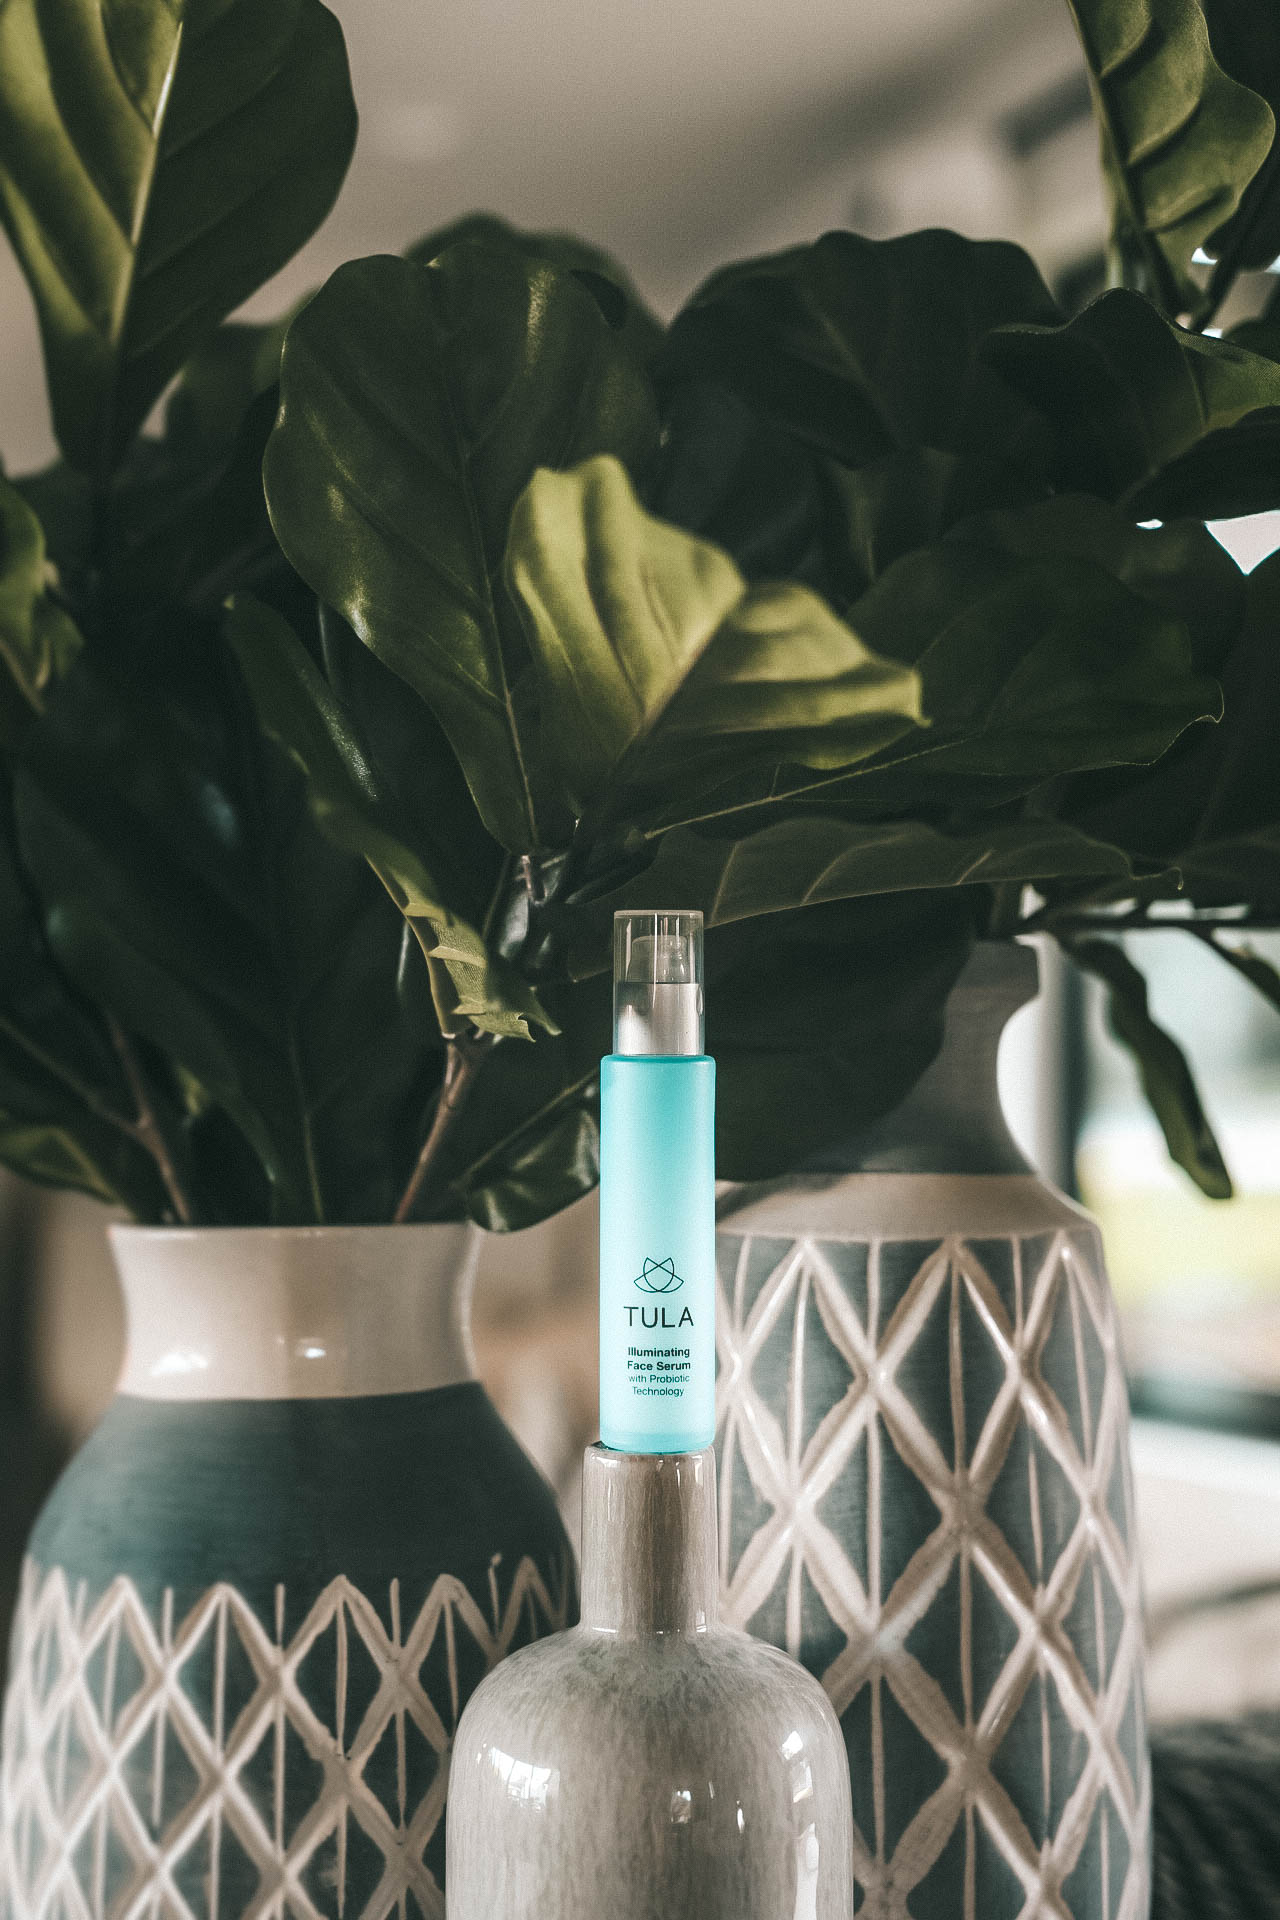 My Must Have Tula Skincare Products | the best skincare products for women || Dressed to Kill #skincare #tula #beauty #womensbeauty #beautyproducts #dtkaustin - My Must Have Tula Skincare Products and 20% off coupon code featured by popular Austin beauty blogger, Dressed to Kill